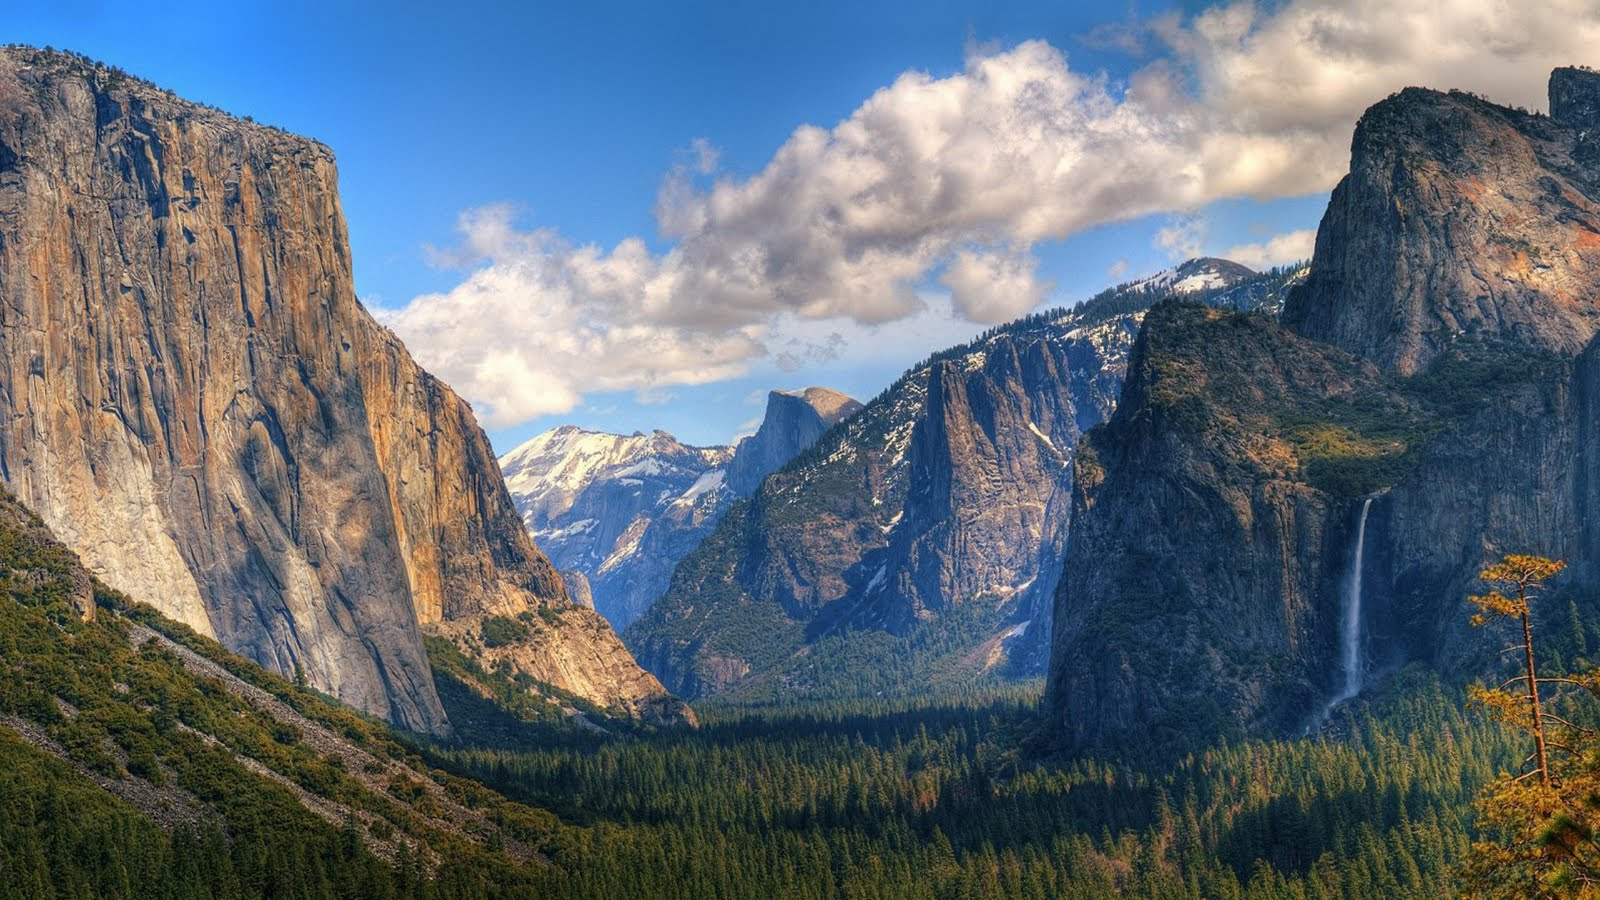 Yosemite_Valley_1920x1080 HDTV 1080p.jpg